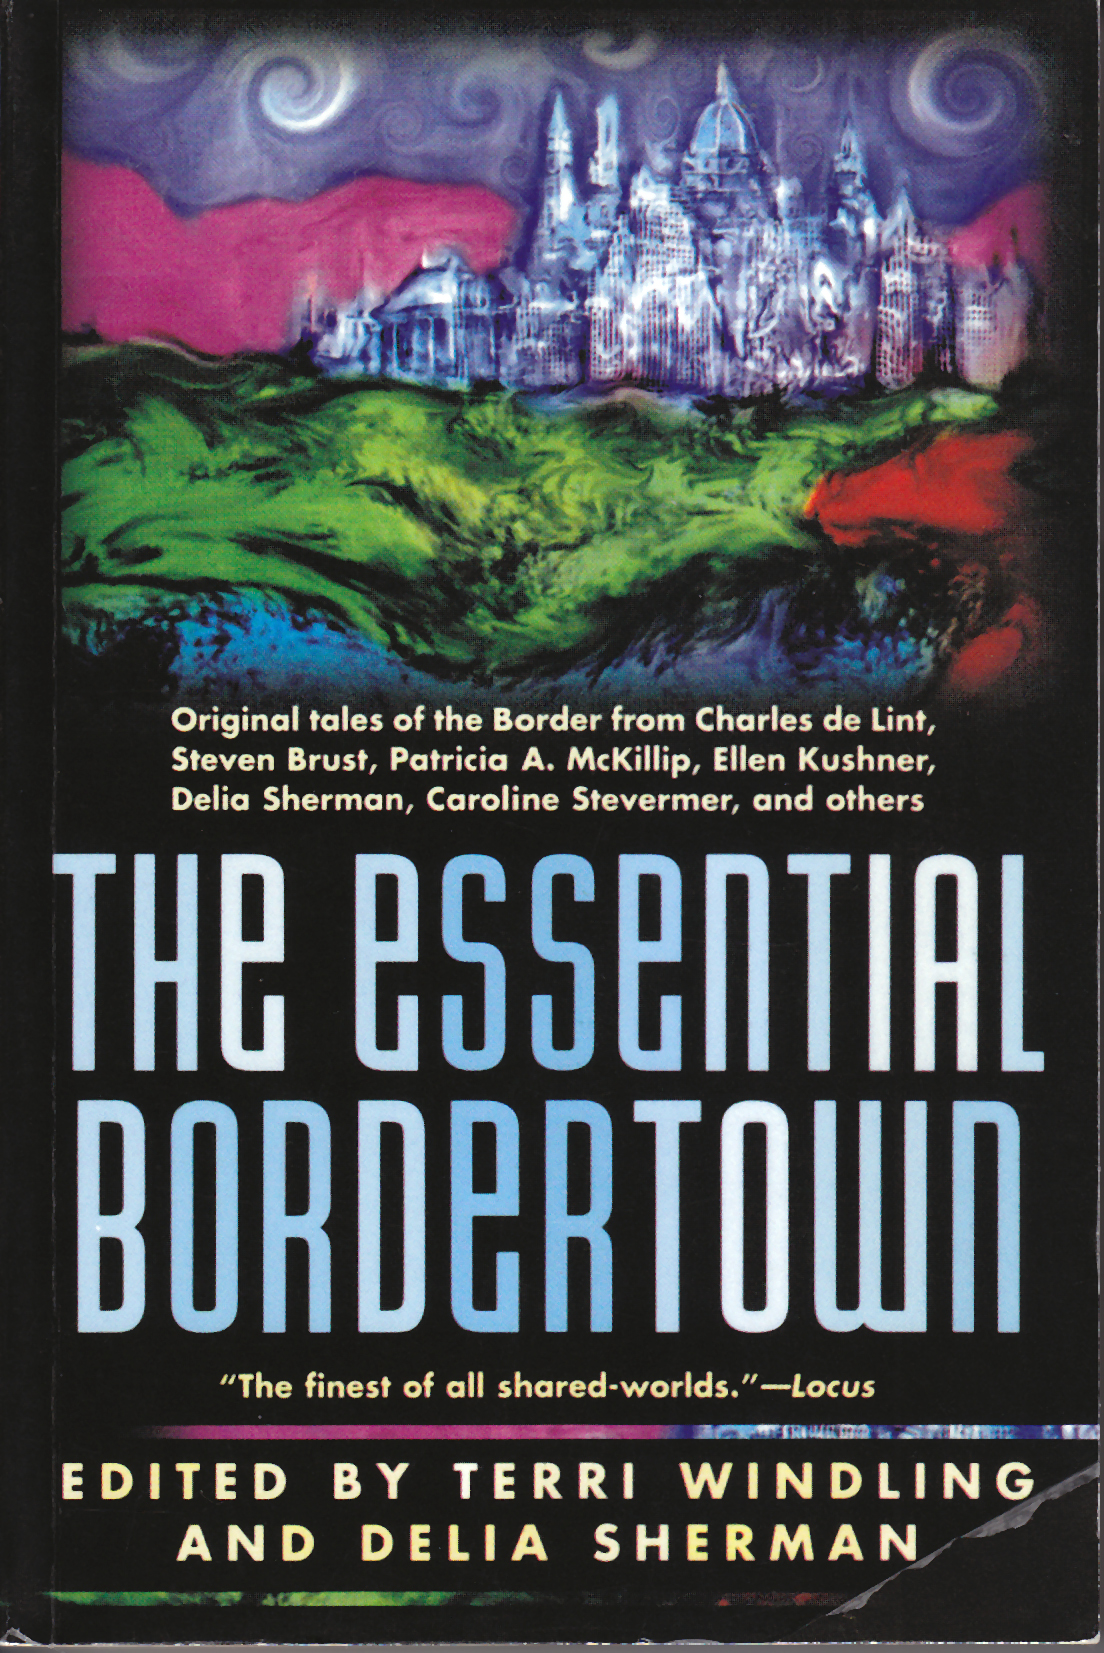 Essential Bordertown